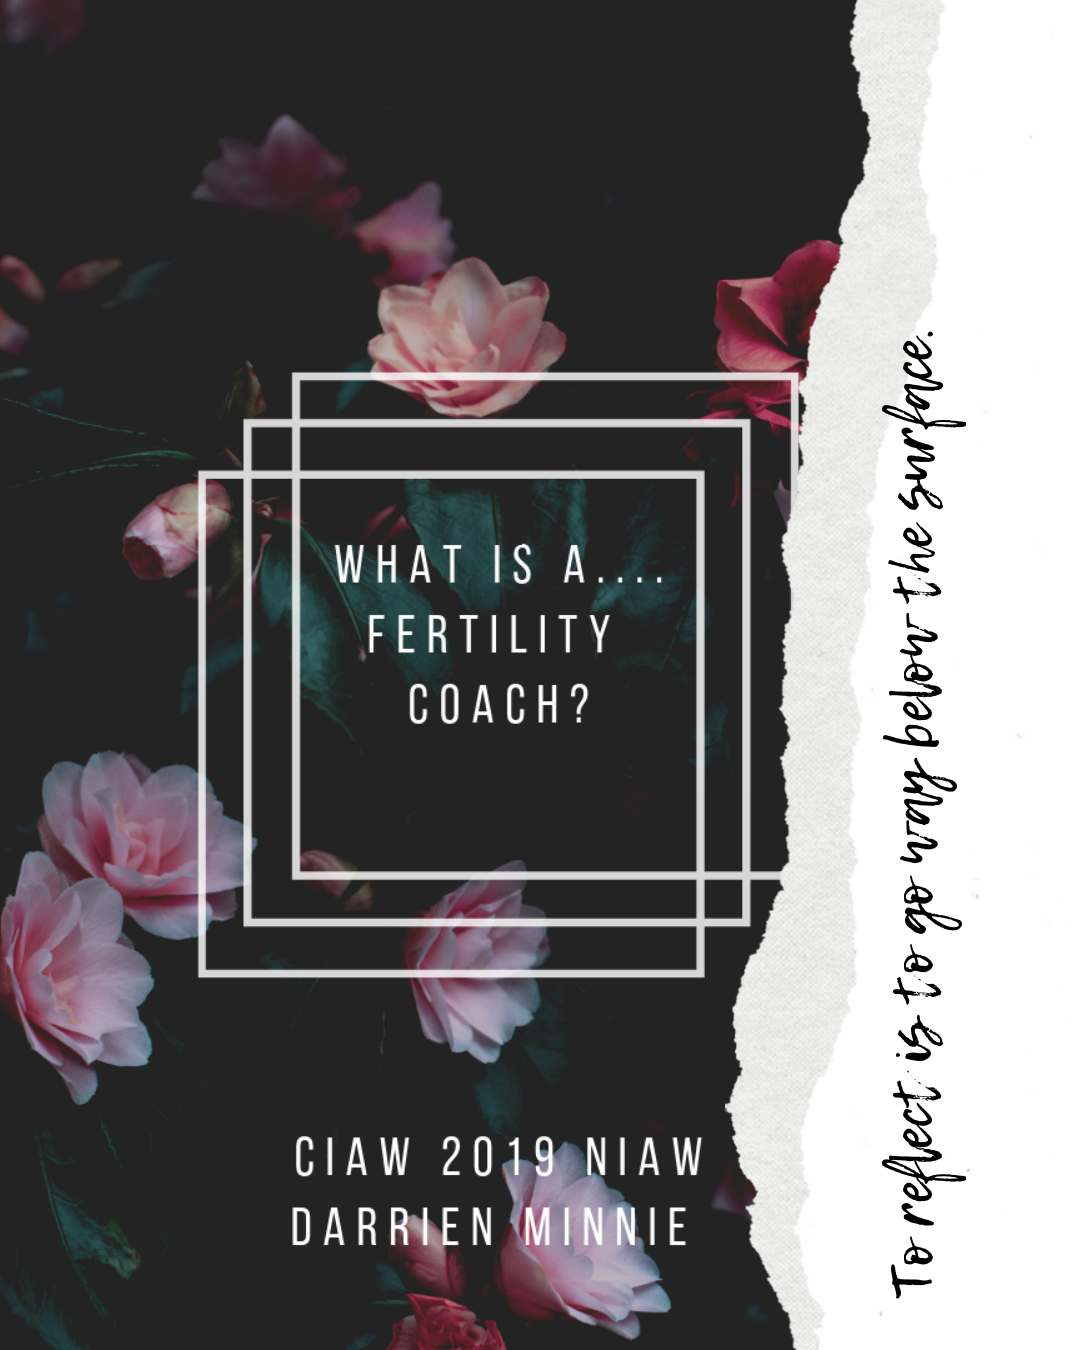 Fertility Coach, eh? - Imagine going through a hard season and feeling alone and craving for human connection. We can't always talk to everyone about these hard storms but we need to talk. A fertility coach is your person. Someone who likely has walked in the storm and knows and understands the type of storm you have been surrounded in. I have walked my storm and now I reach my hand out to you. I care for you I care for the whole you! The physical, emotional mental and spiritual wellness. I am hear to listen, offer you resources and evidence based information. Education of tools and coping skills, offering support - emotional support being a sounding board, listening to your lives experiences, or physical support: going to appointments with you, providing mind and body tools, or alternative treatments such as yoga for fertility. You are not in this alone. My heart breaks when I hear someone say they went through this and had no one to connect with. Nurturing you to regain your strength and resilience to move forward in your journey. Whichever way that looks like. #fertilitydoula #fertilitycoach#fertilityspecialist #yogaforfertility#yogainstructor #ciaw2019 #niaw2019#uncoveringinfertility#infertilityuncovered#darrienminniefertilitycoach #mindbody#mindfullyttc